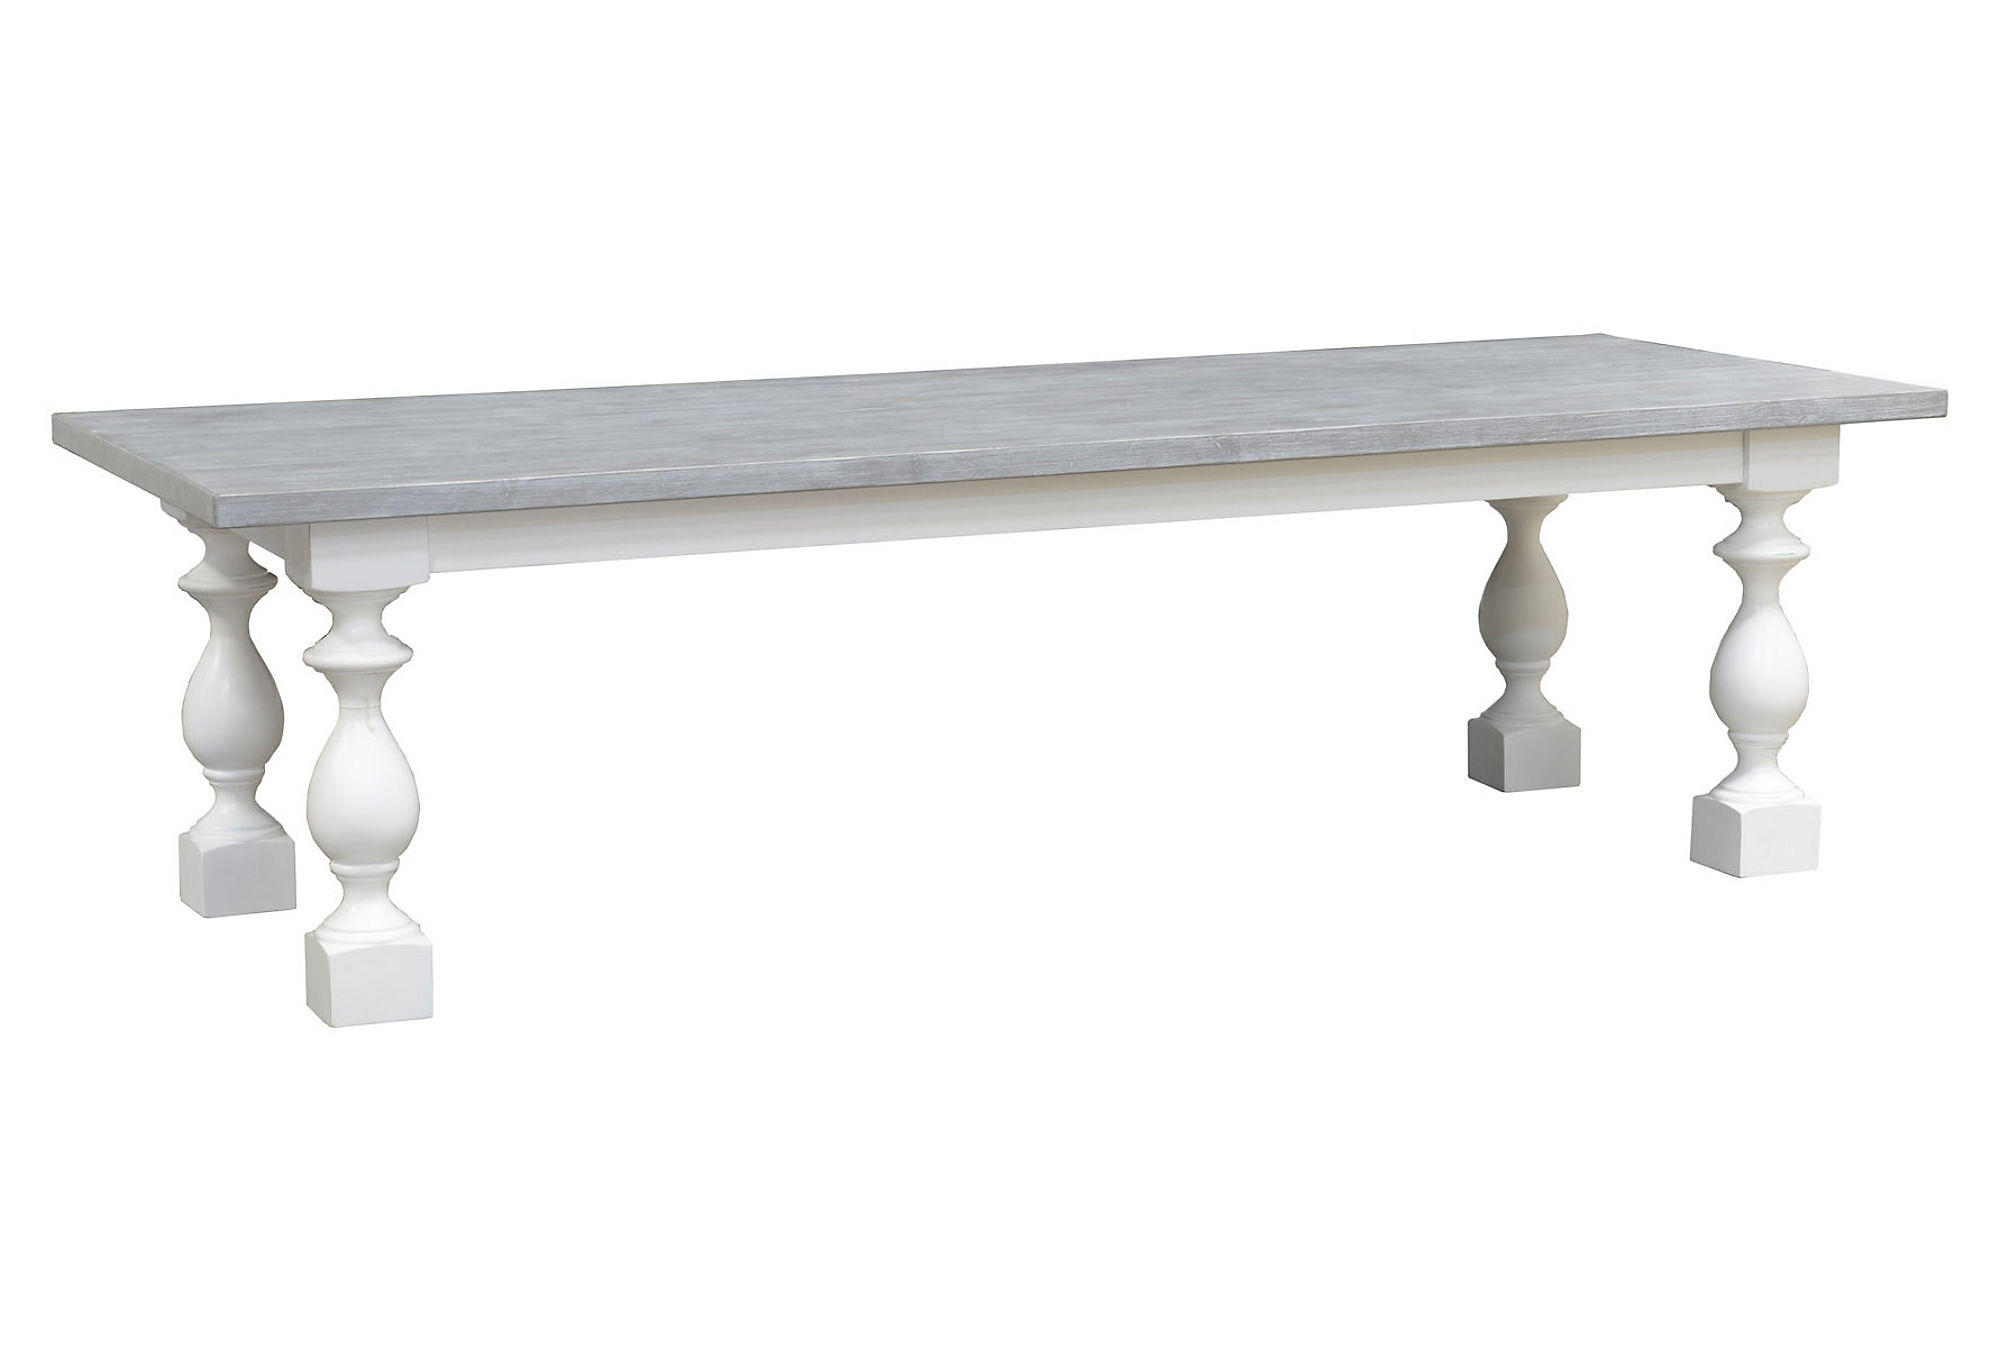 Marlow 108 Dining Table Ash Gray From One Kings Lane